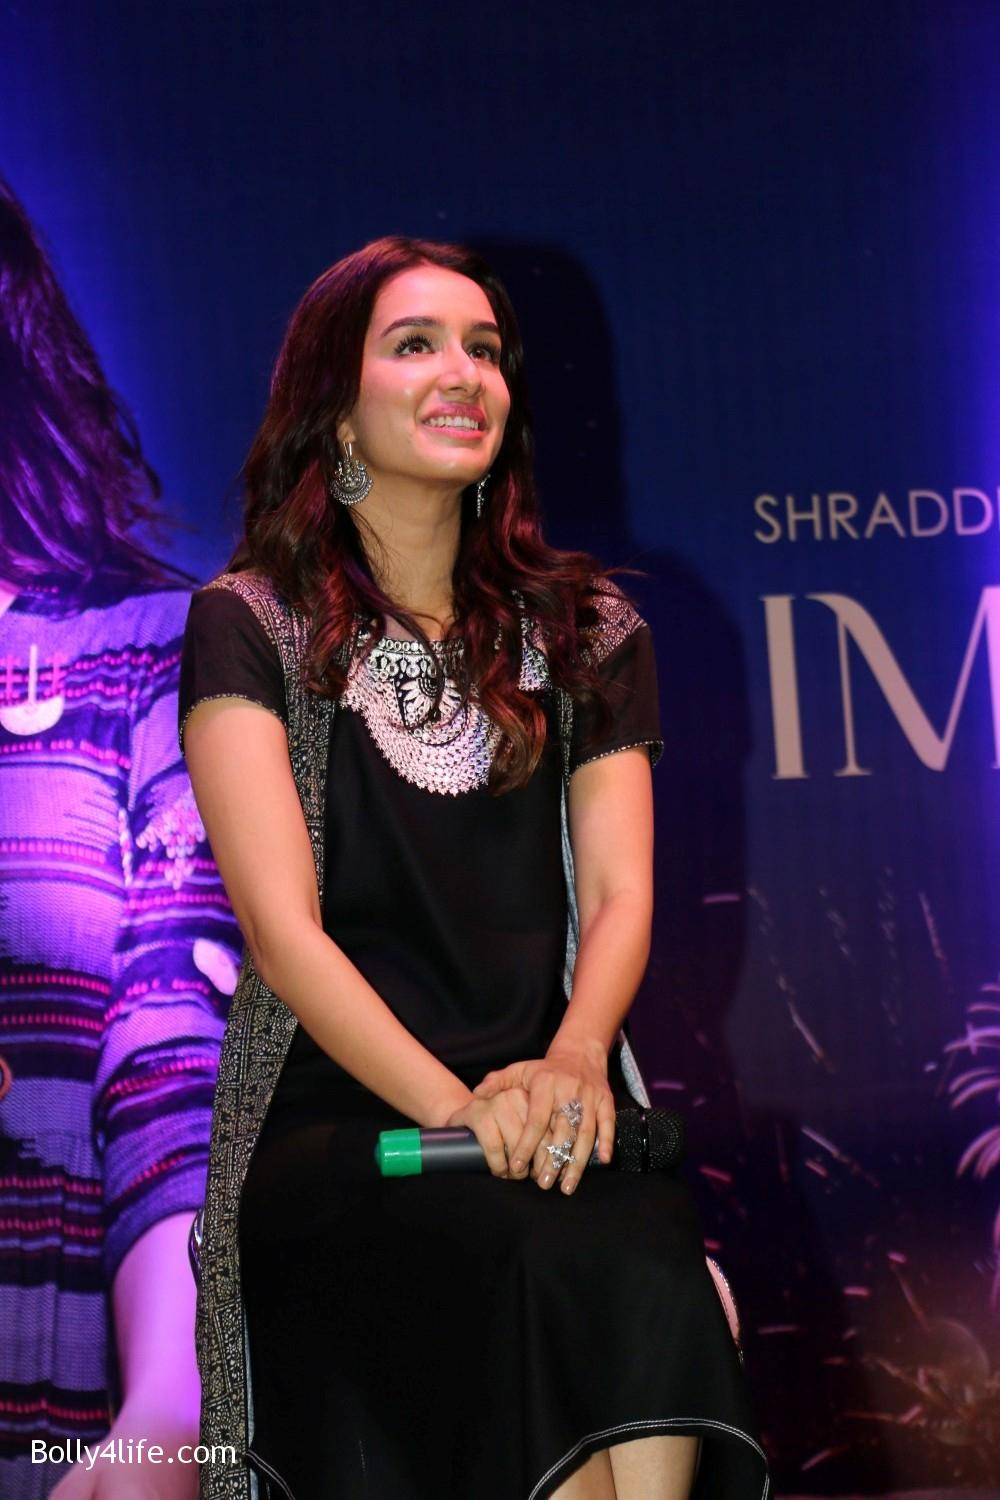 Shraddha-Kapoor-during-the-Enthnic-Wear-store-launch-12.jpg